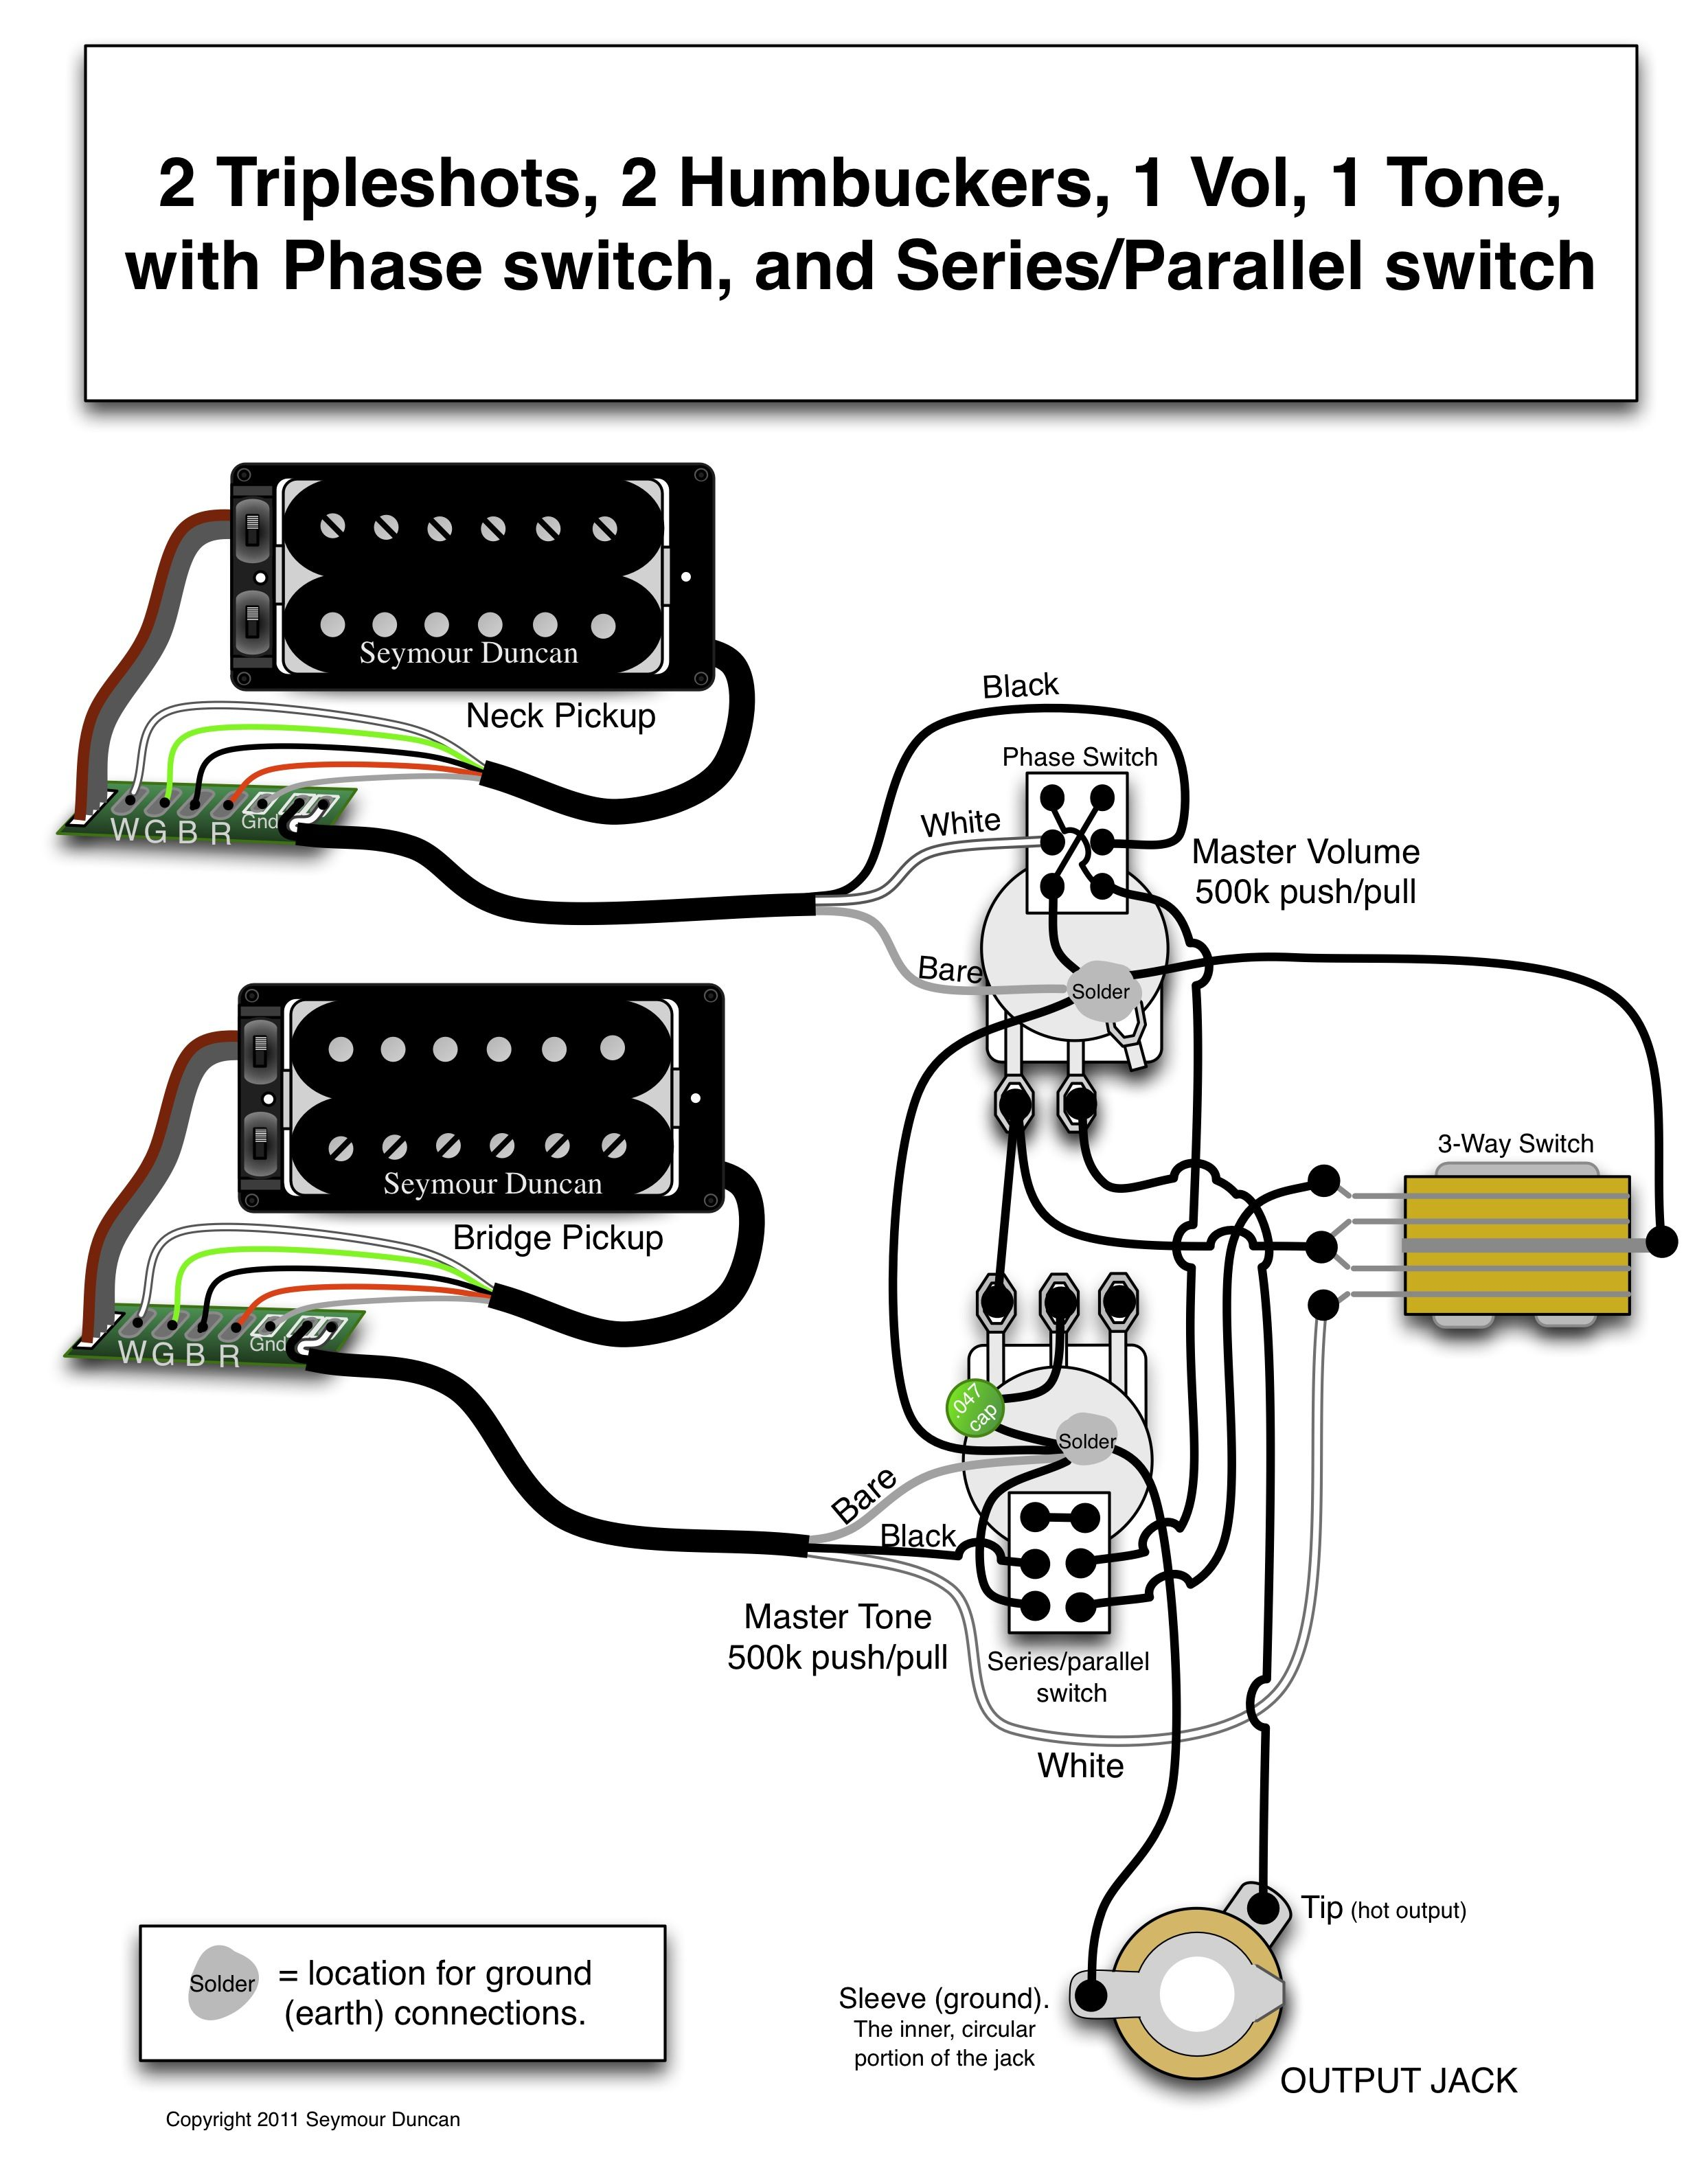 11e7a4ce932088841833425d14ebd2ea seymour duncan wiring diagram 2 triple shots, 2 humbuckers, 1  at honlapkeszites.co